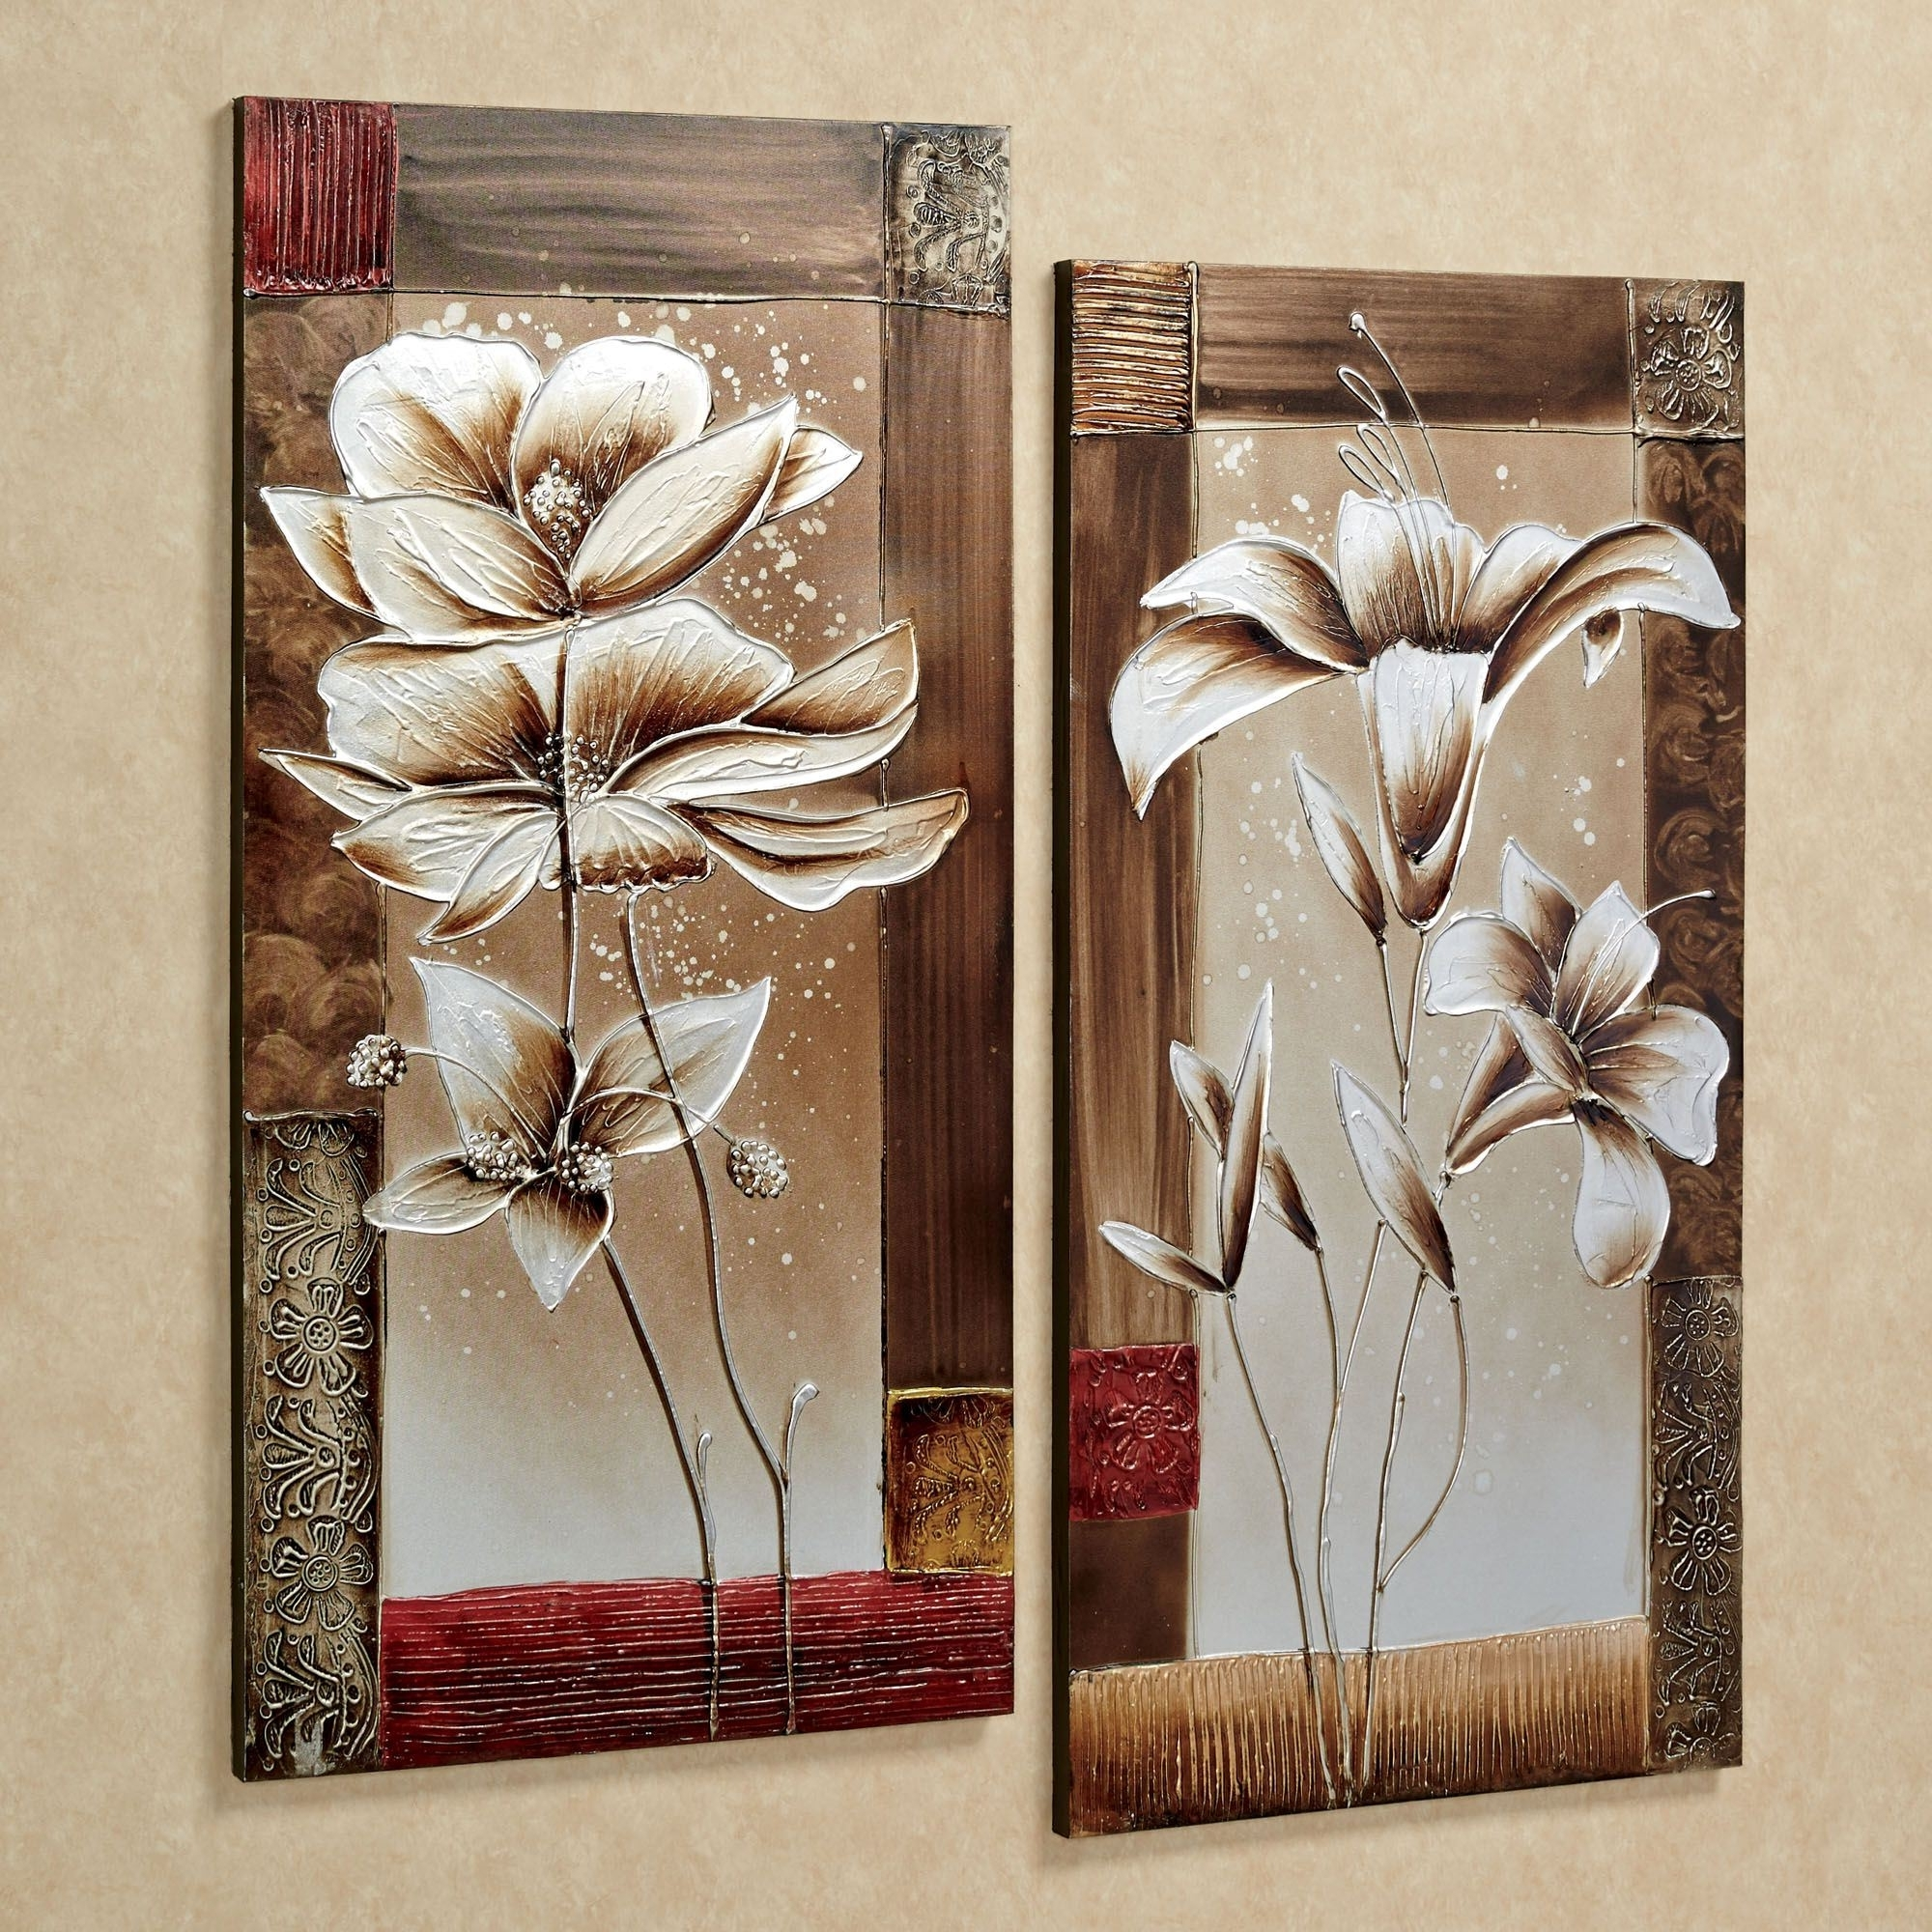 Petals Of Spring Floral Canvas Wall Art Set Intended For Most Popular Canvas Wall Art (View 12 of 15)